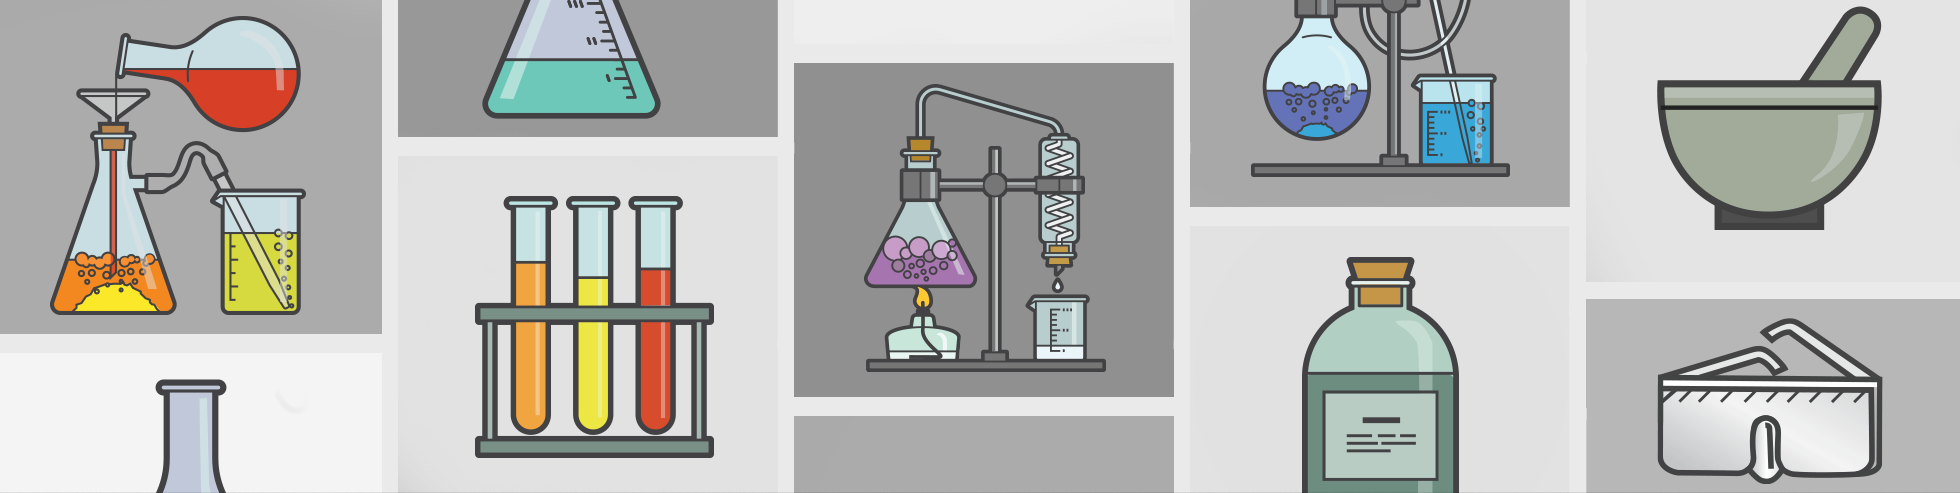 illustrations of various science-related items